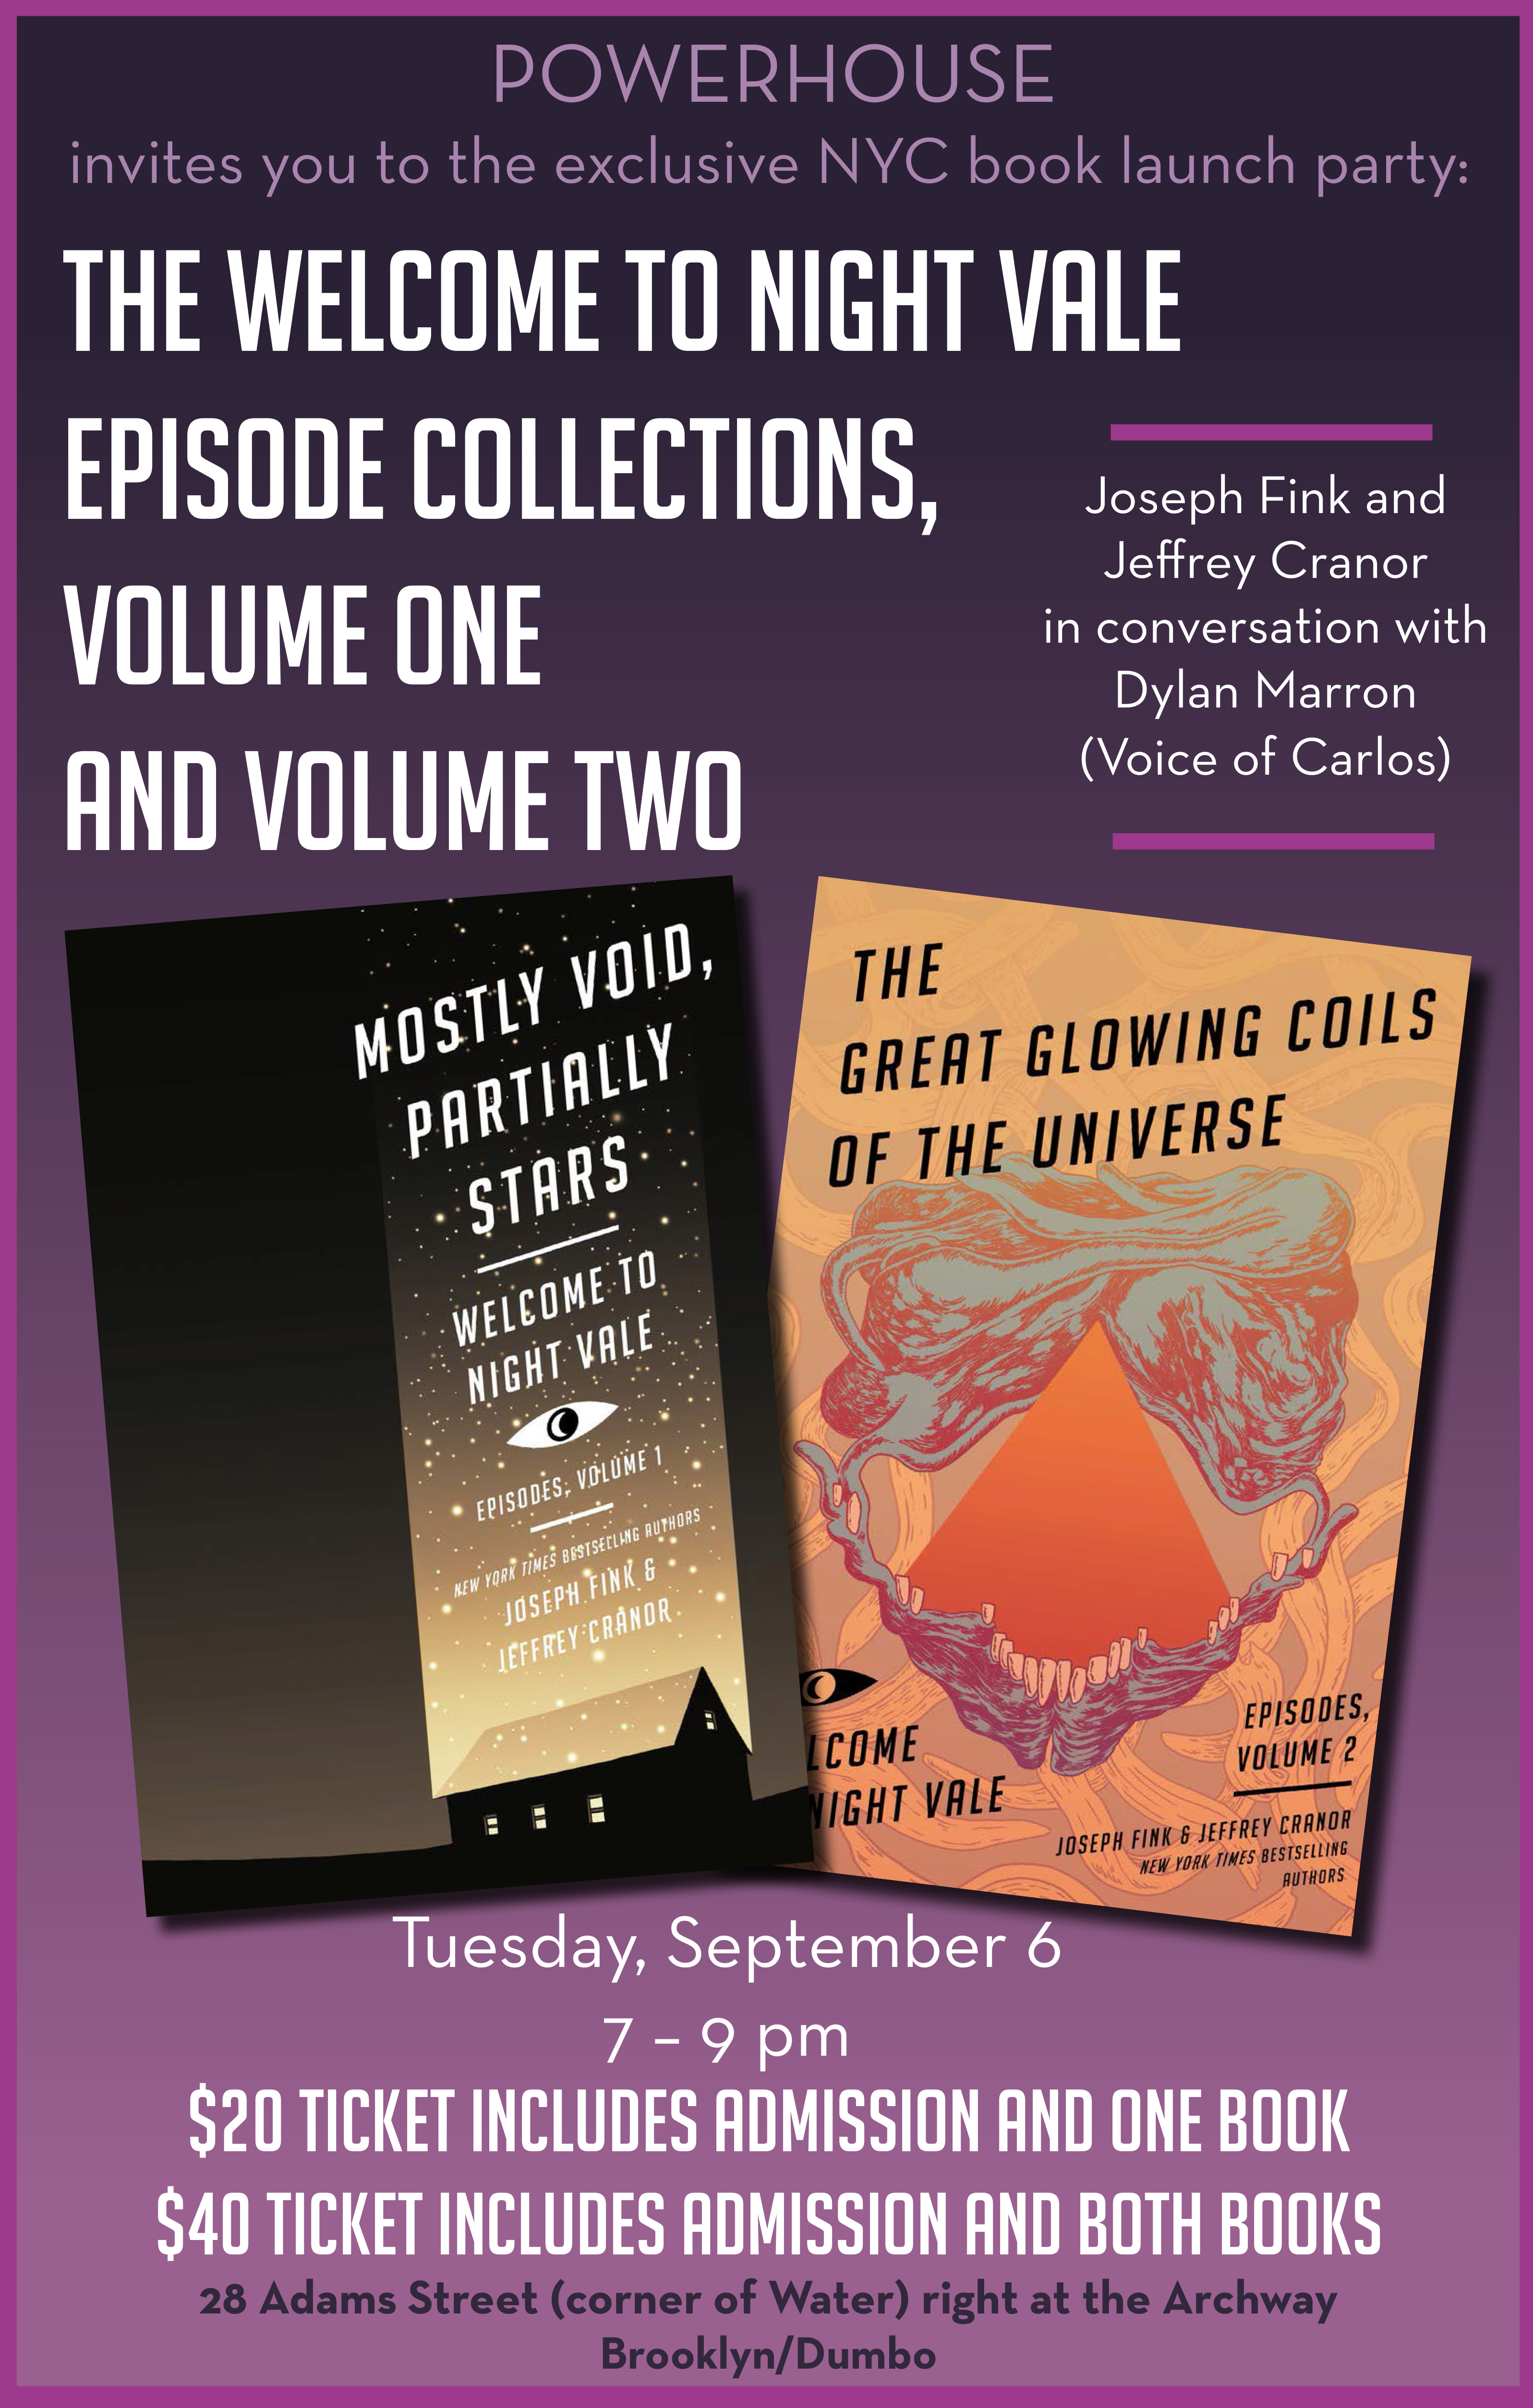 Book Launch: Welcome to Night Vale Episodes Volume One and Two by Joseph Fink and Jeffrey Cranor in conversation with Dylan Marron